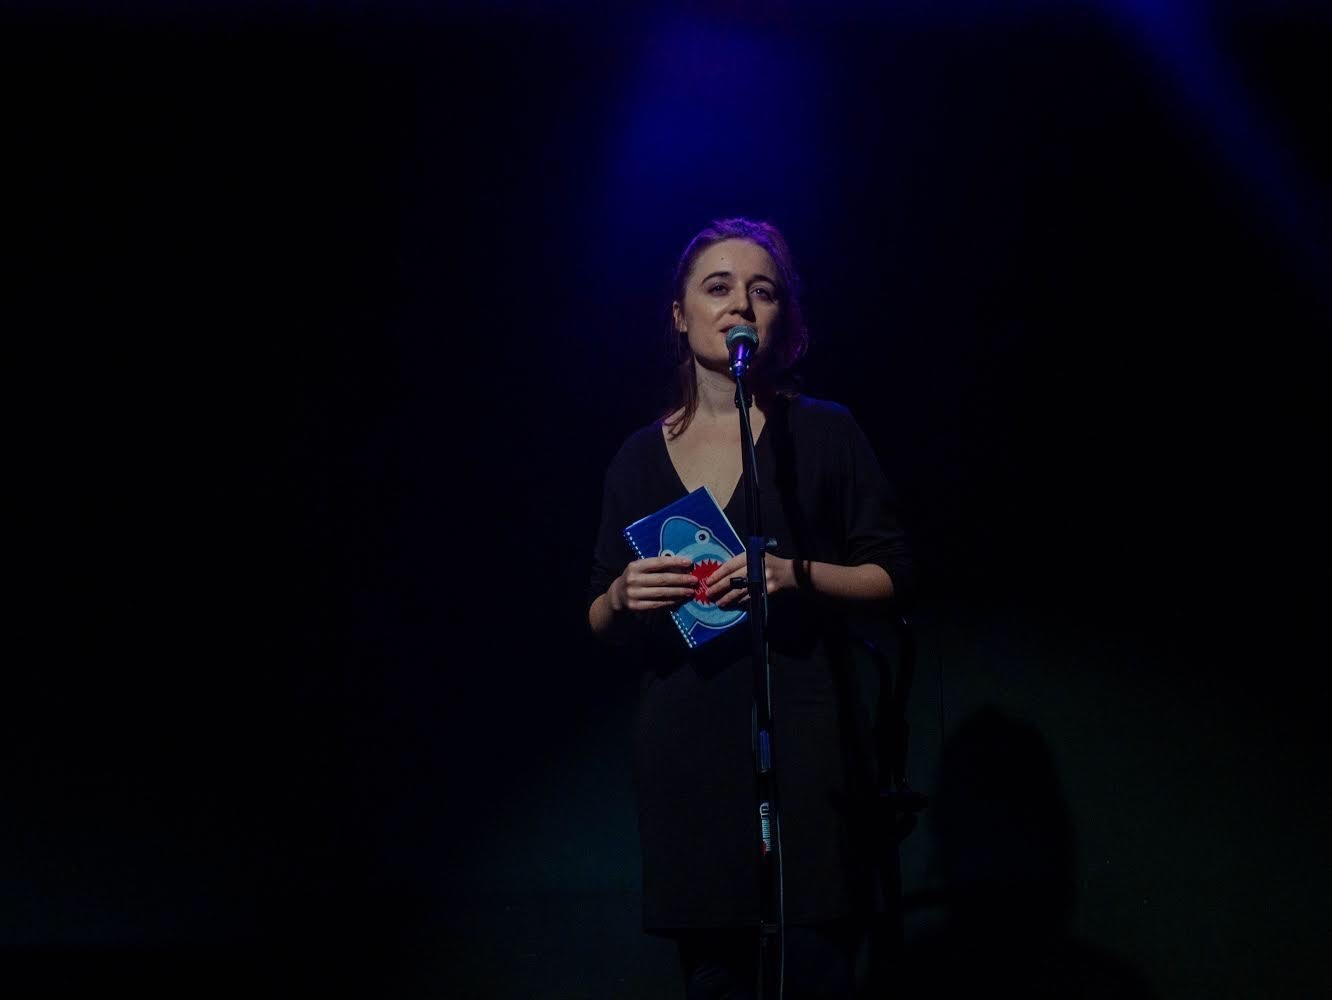 A woman stands behind a microphone, she is holding a blue notebook in her hands.